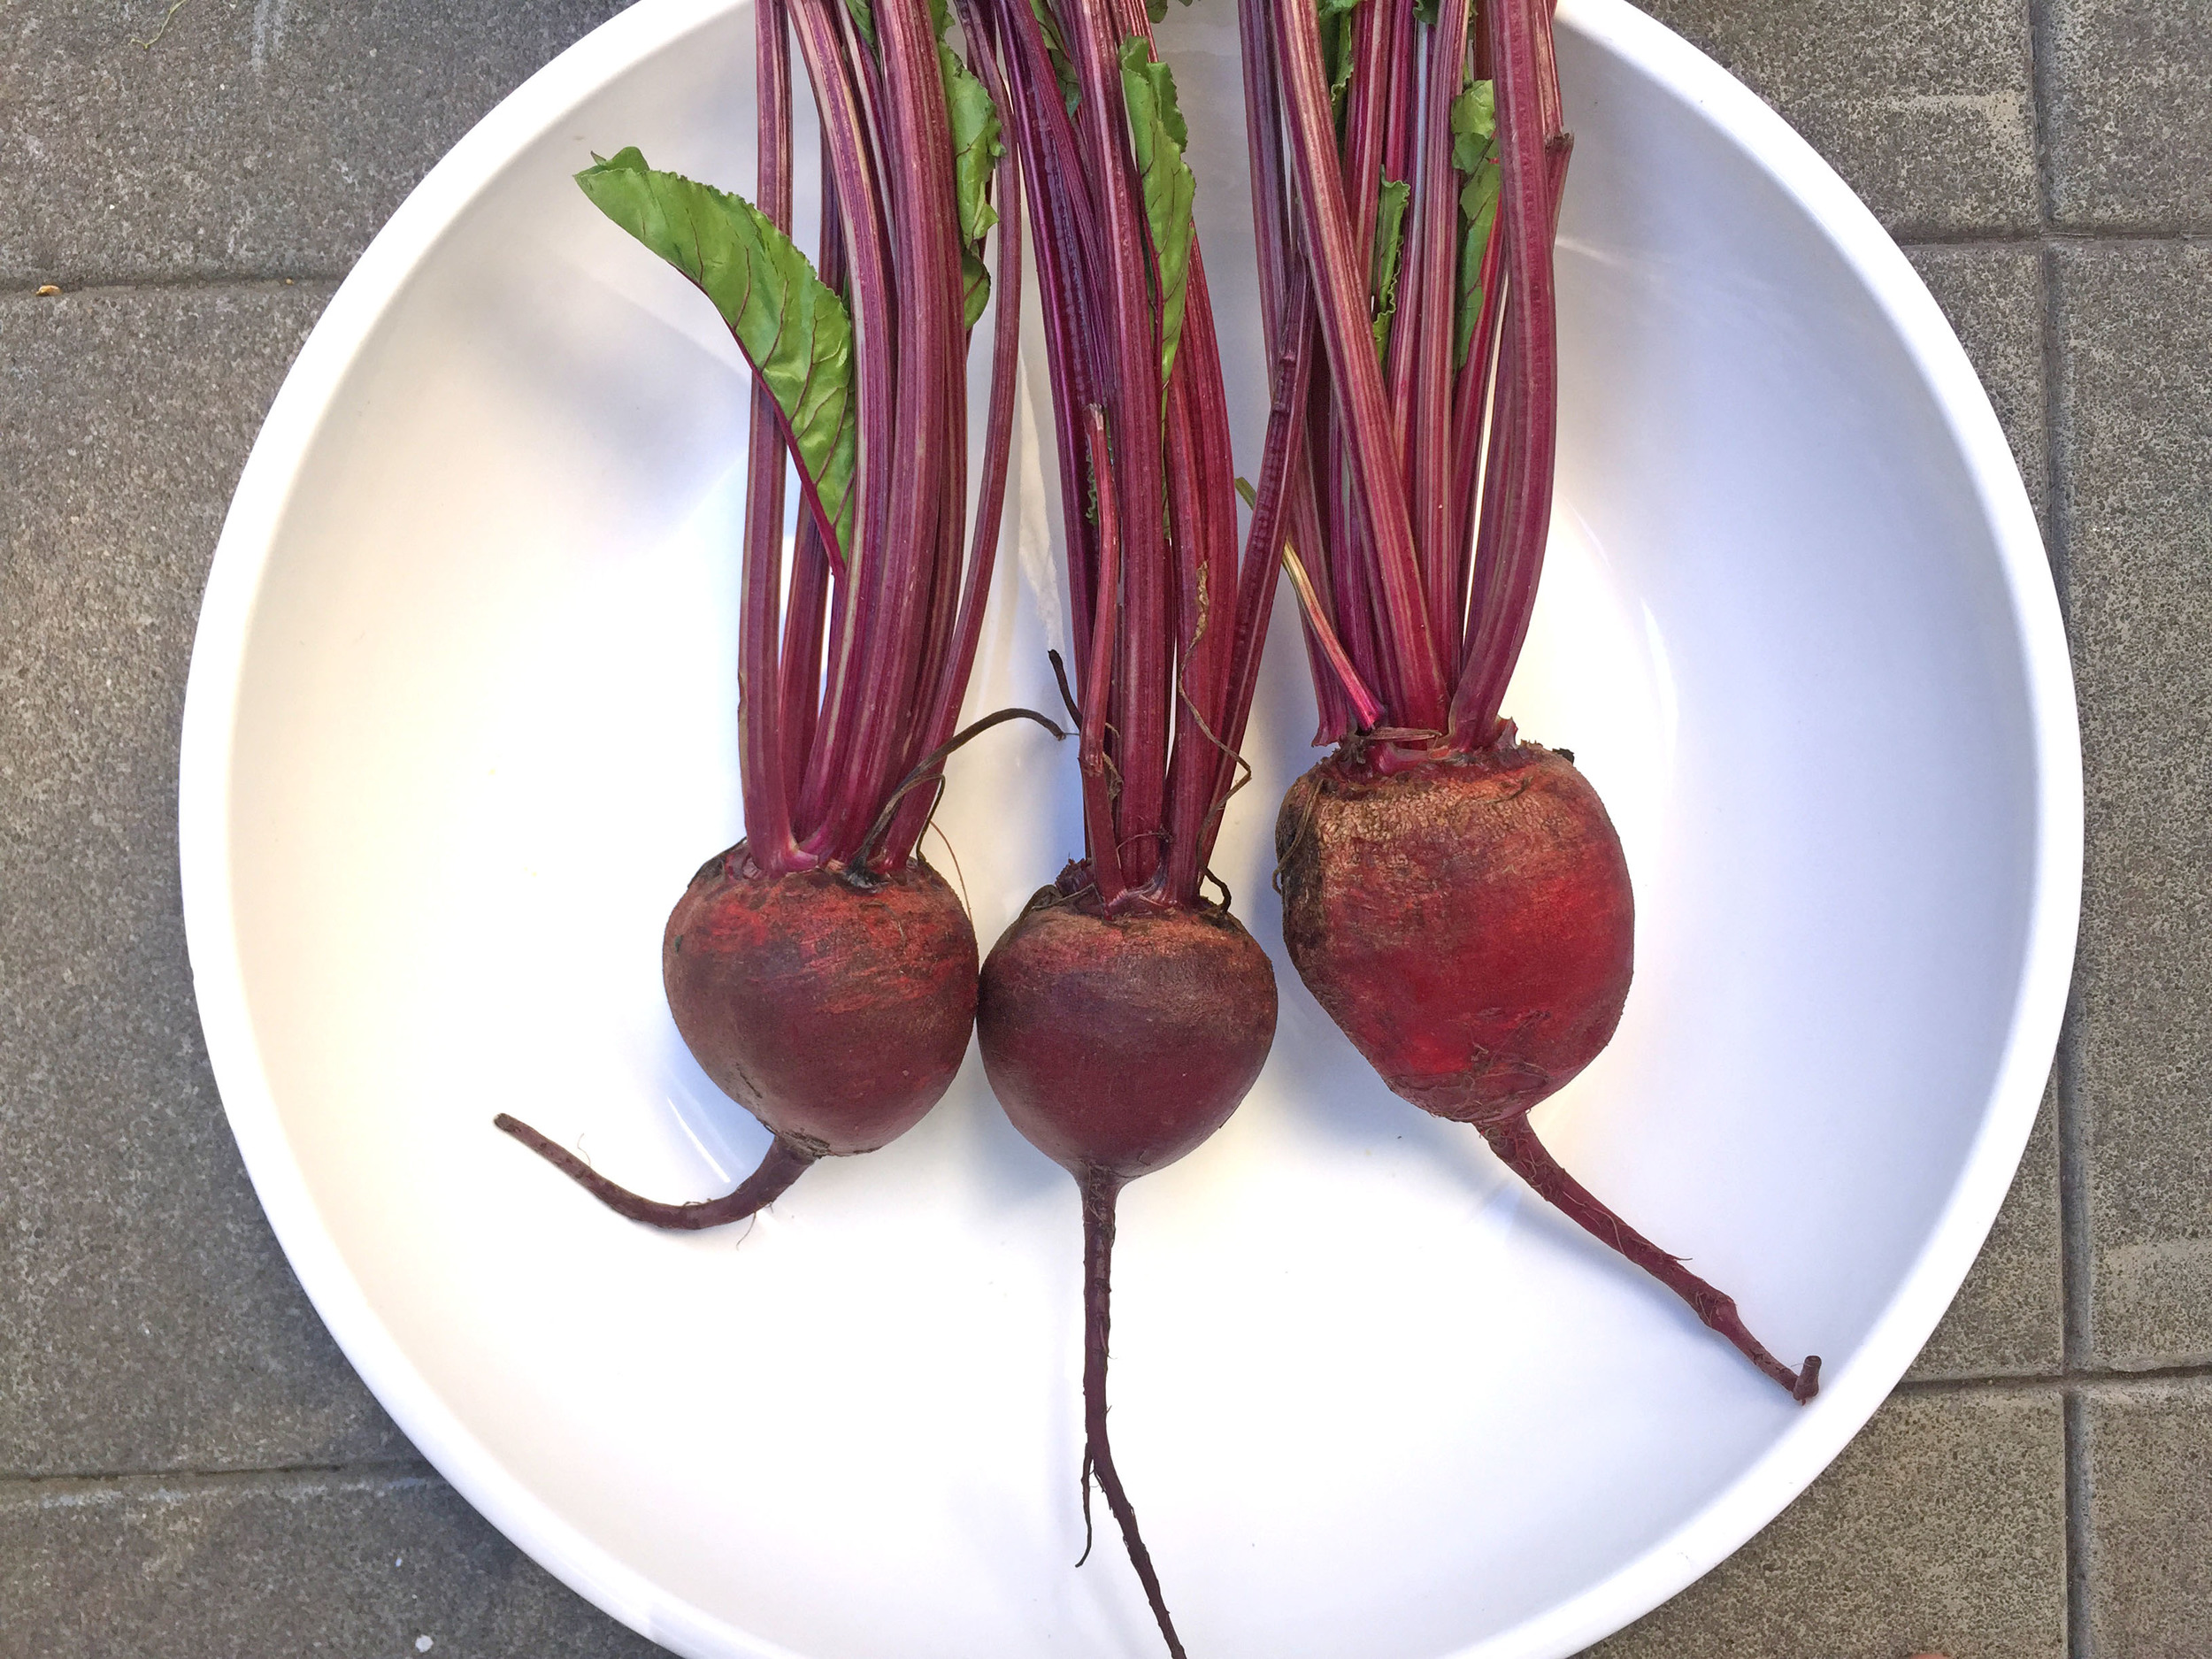 beets in a bowl